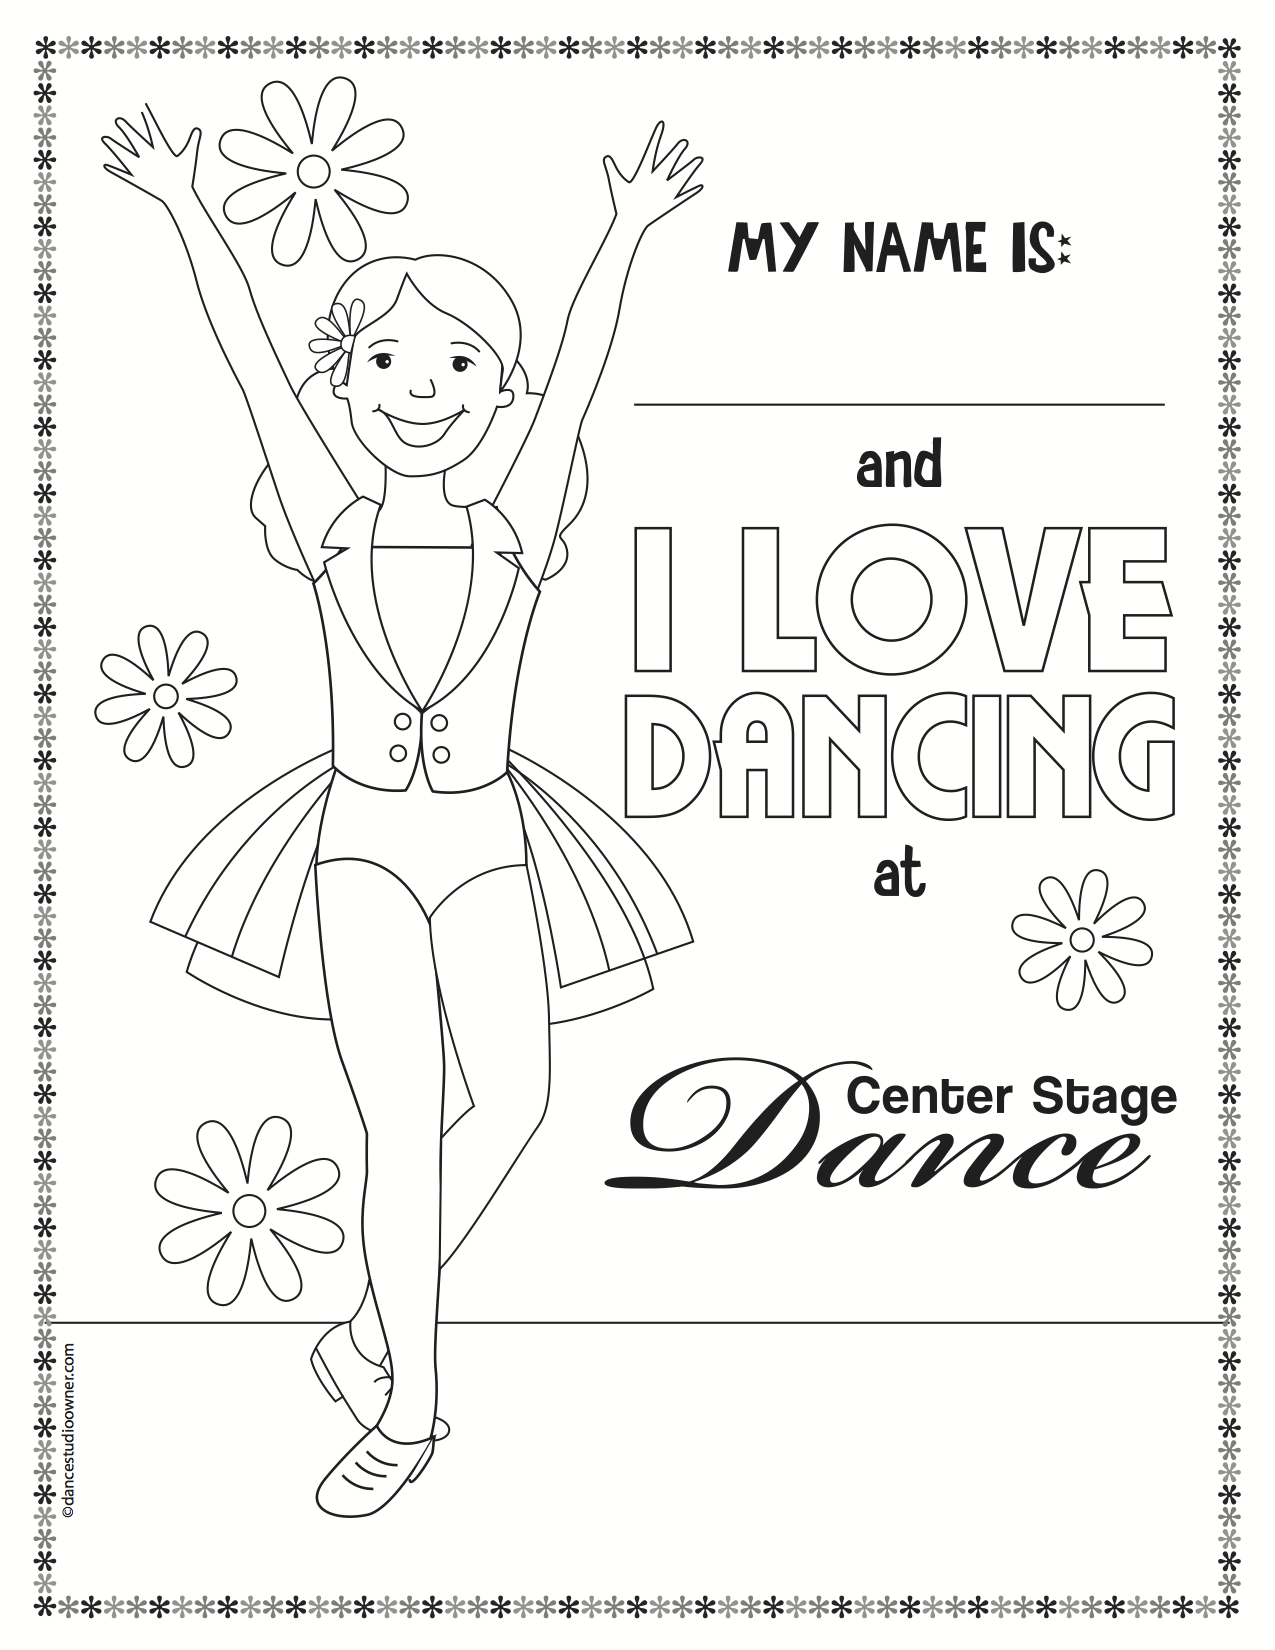 tap dance coloring pages - photo#15